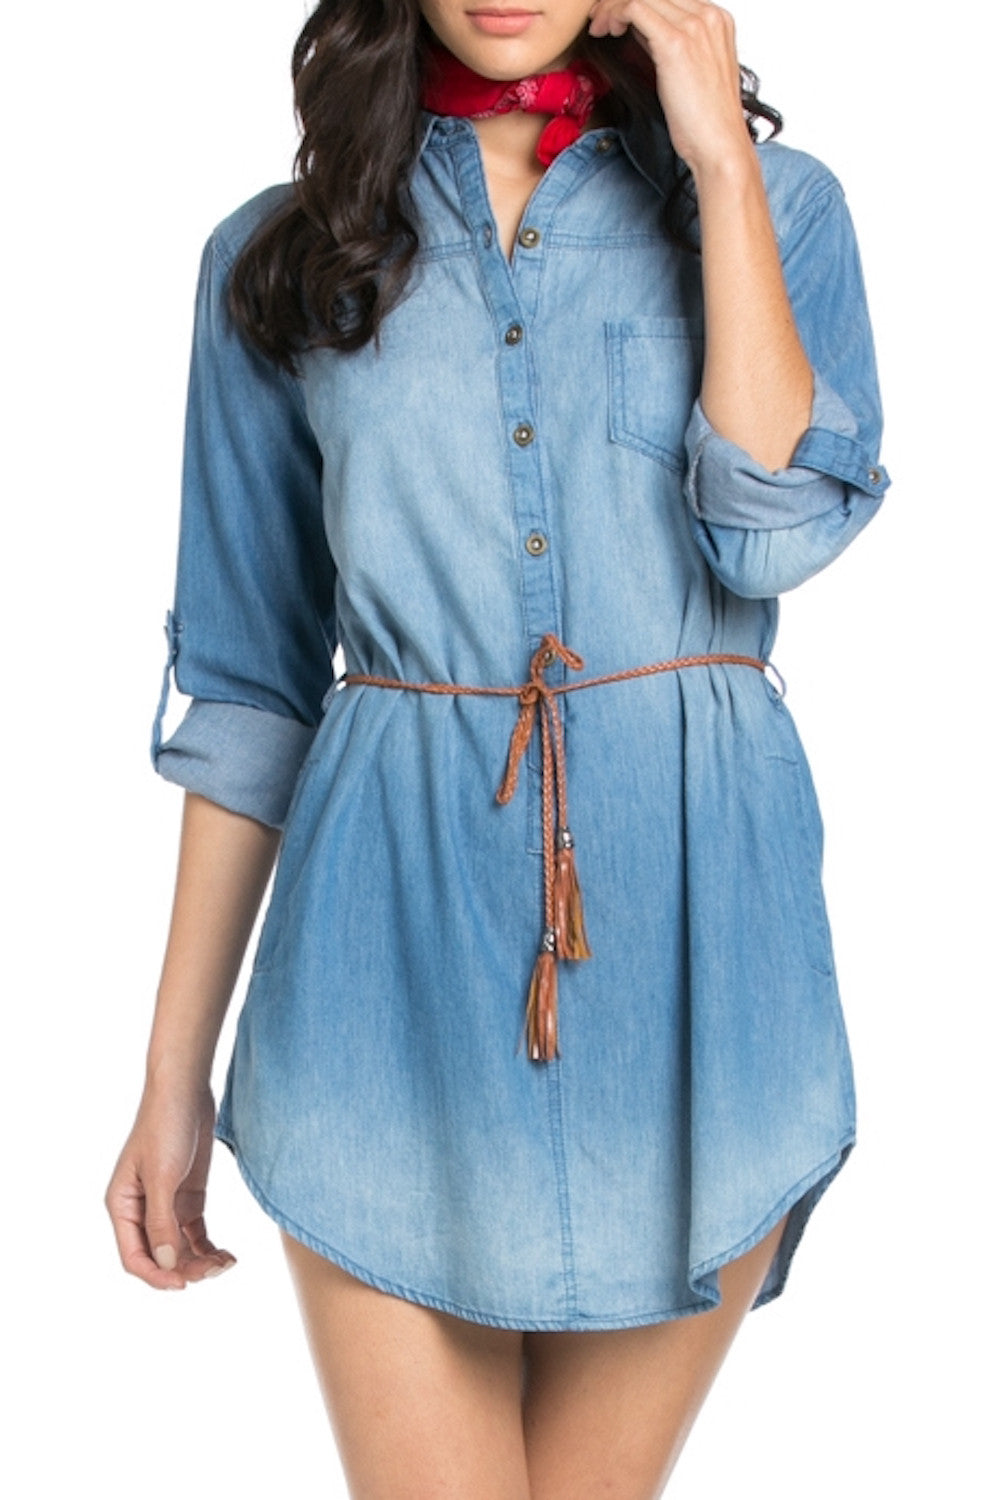 Long Sleeve Botton Down Light Washed Denim Tunic Dress South Of